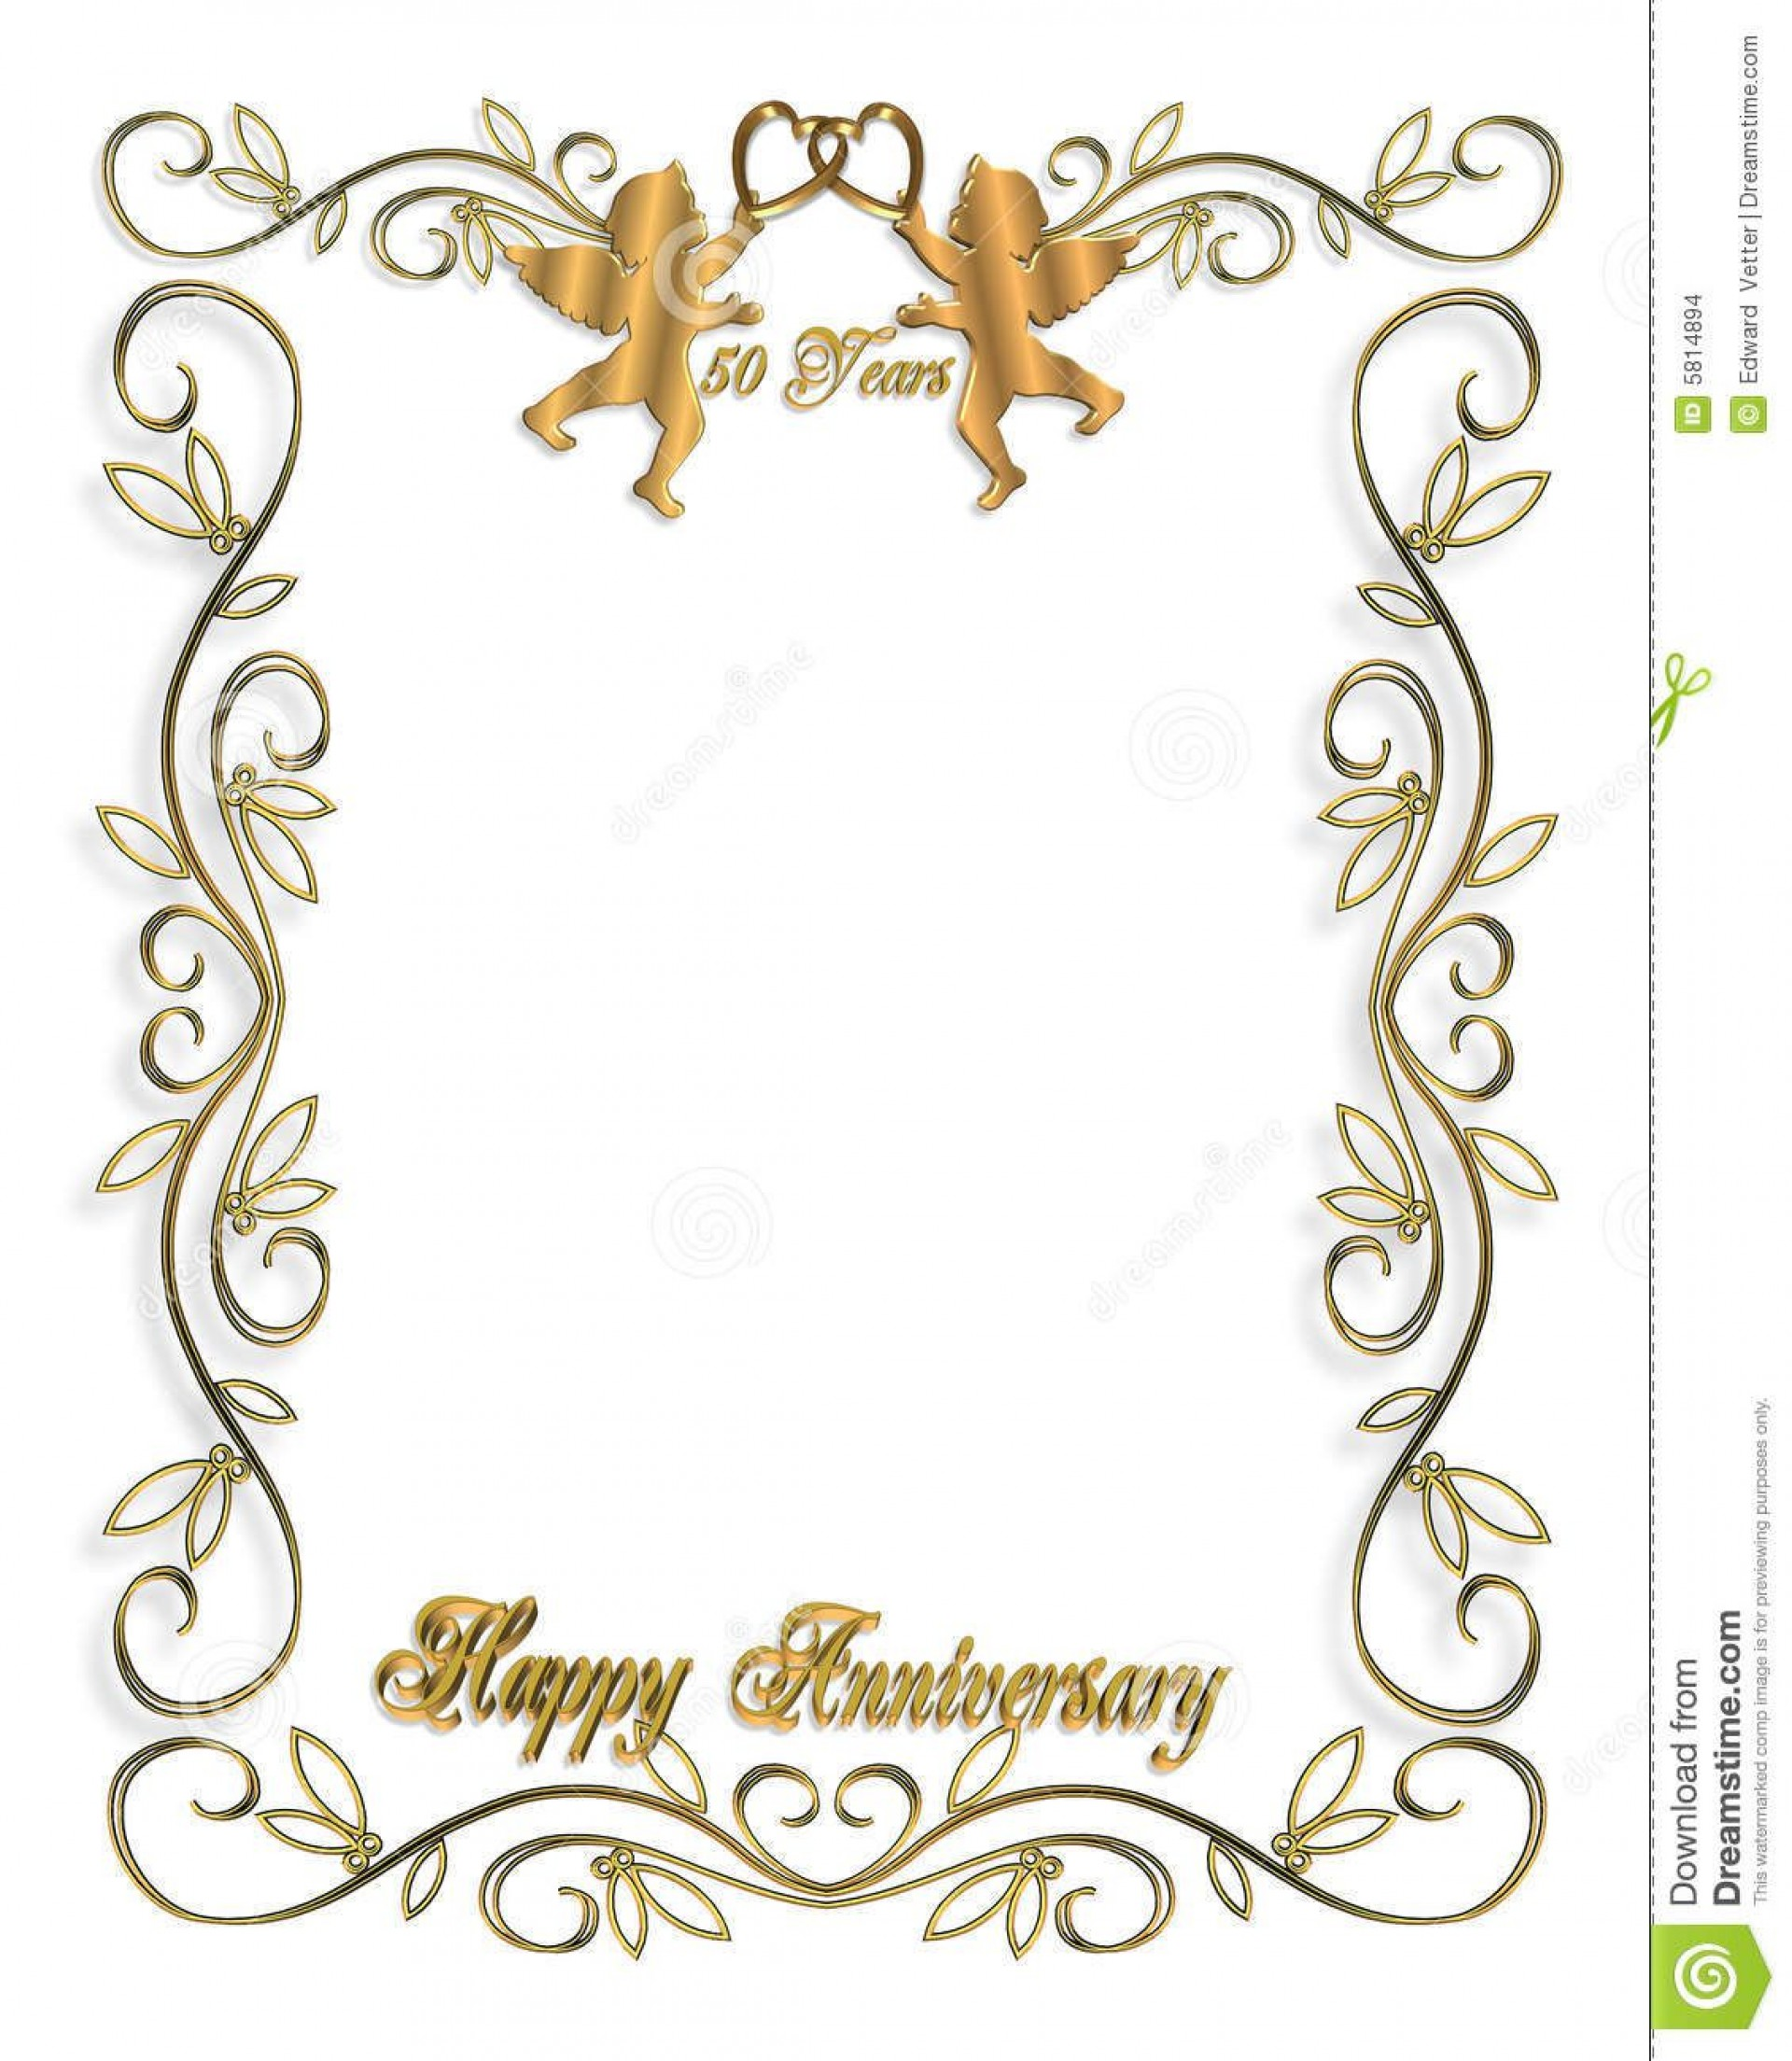 009 Magnificent Golden Wedding Anniversary Invitation Template Free Example  50th Microsoft Word Download1920